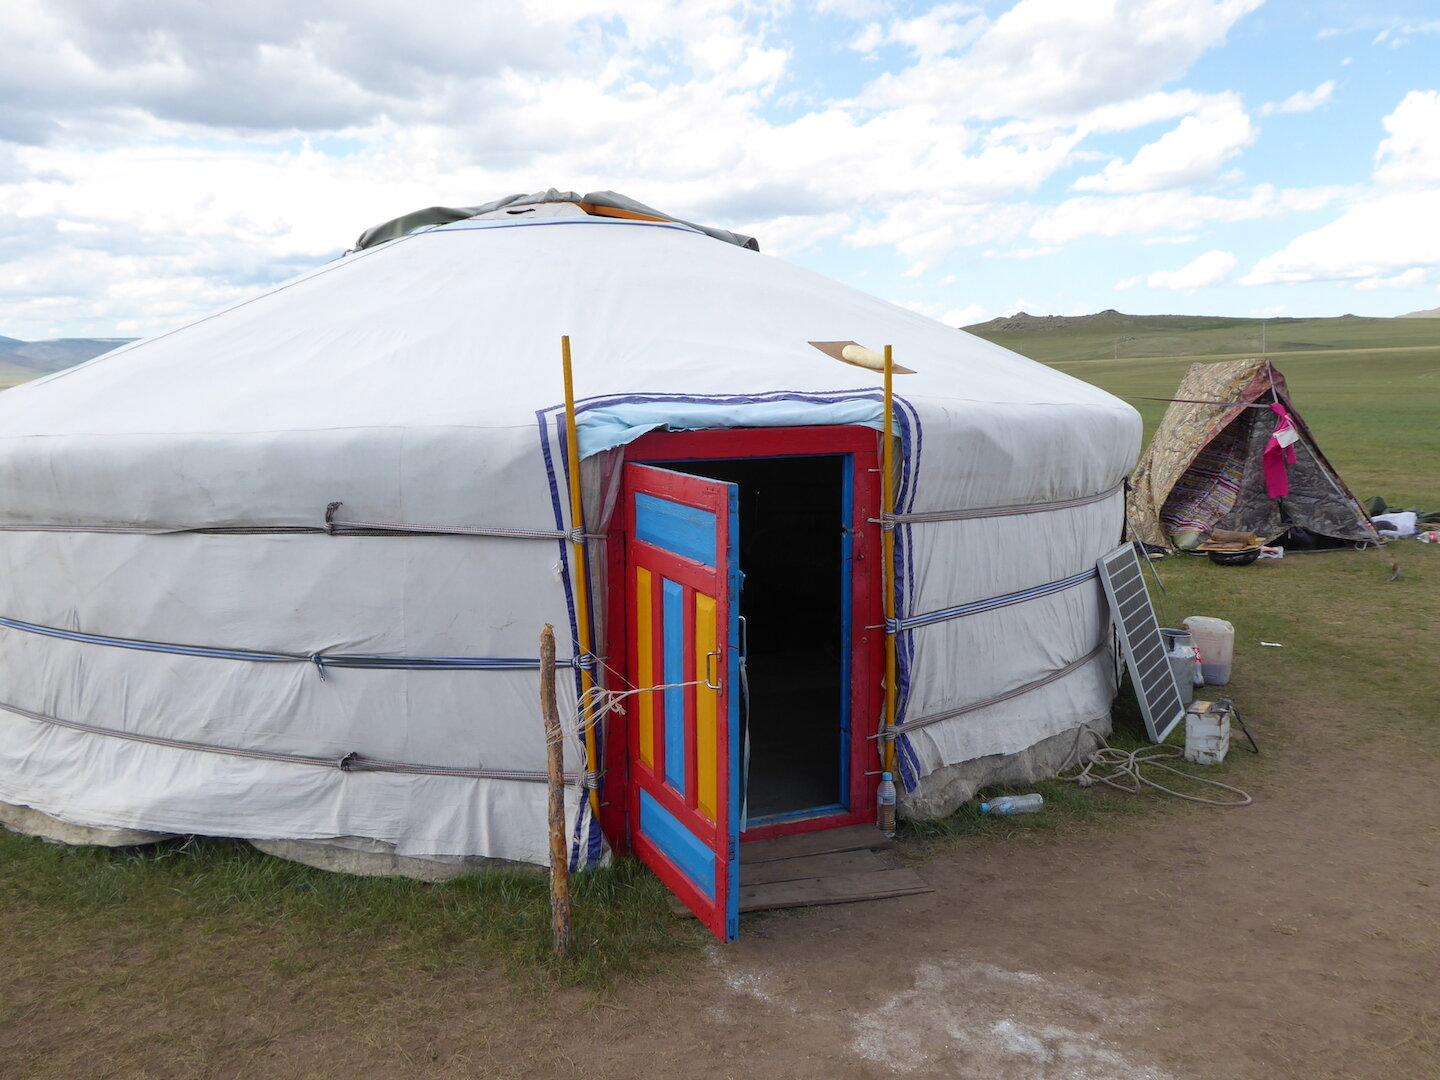 Present-day home in the Mongolian countryside, known as a ger (Mongolian) or yurt (Russian). (Credit: Christina Warinner)